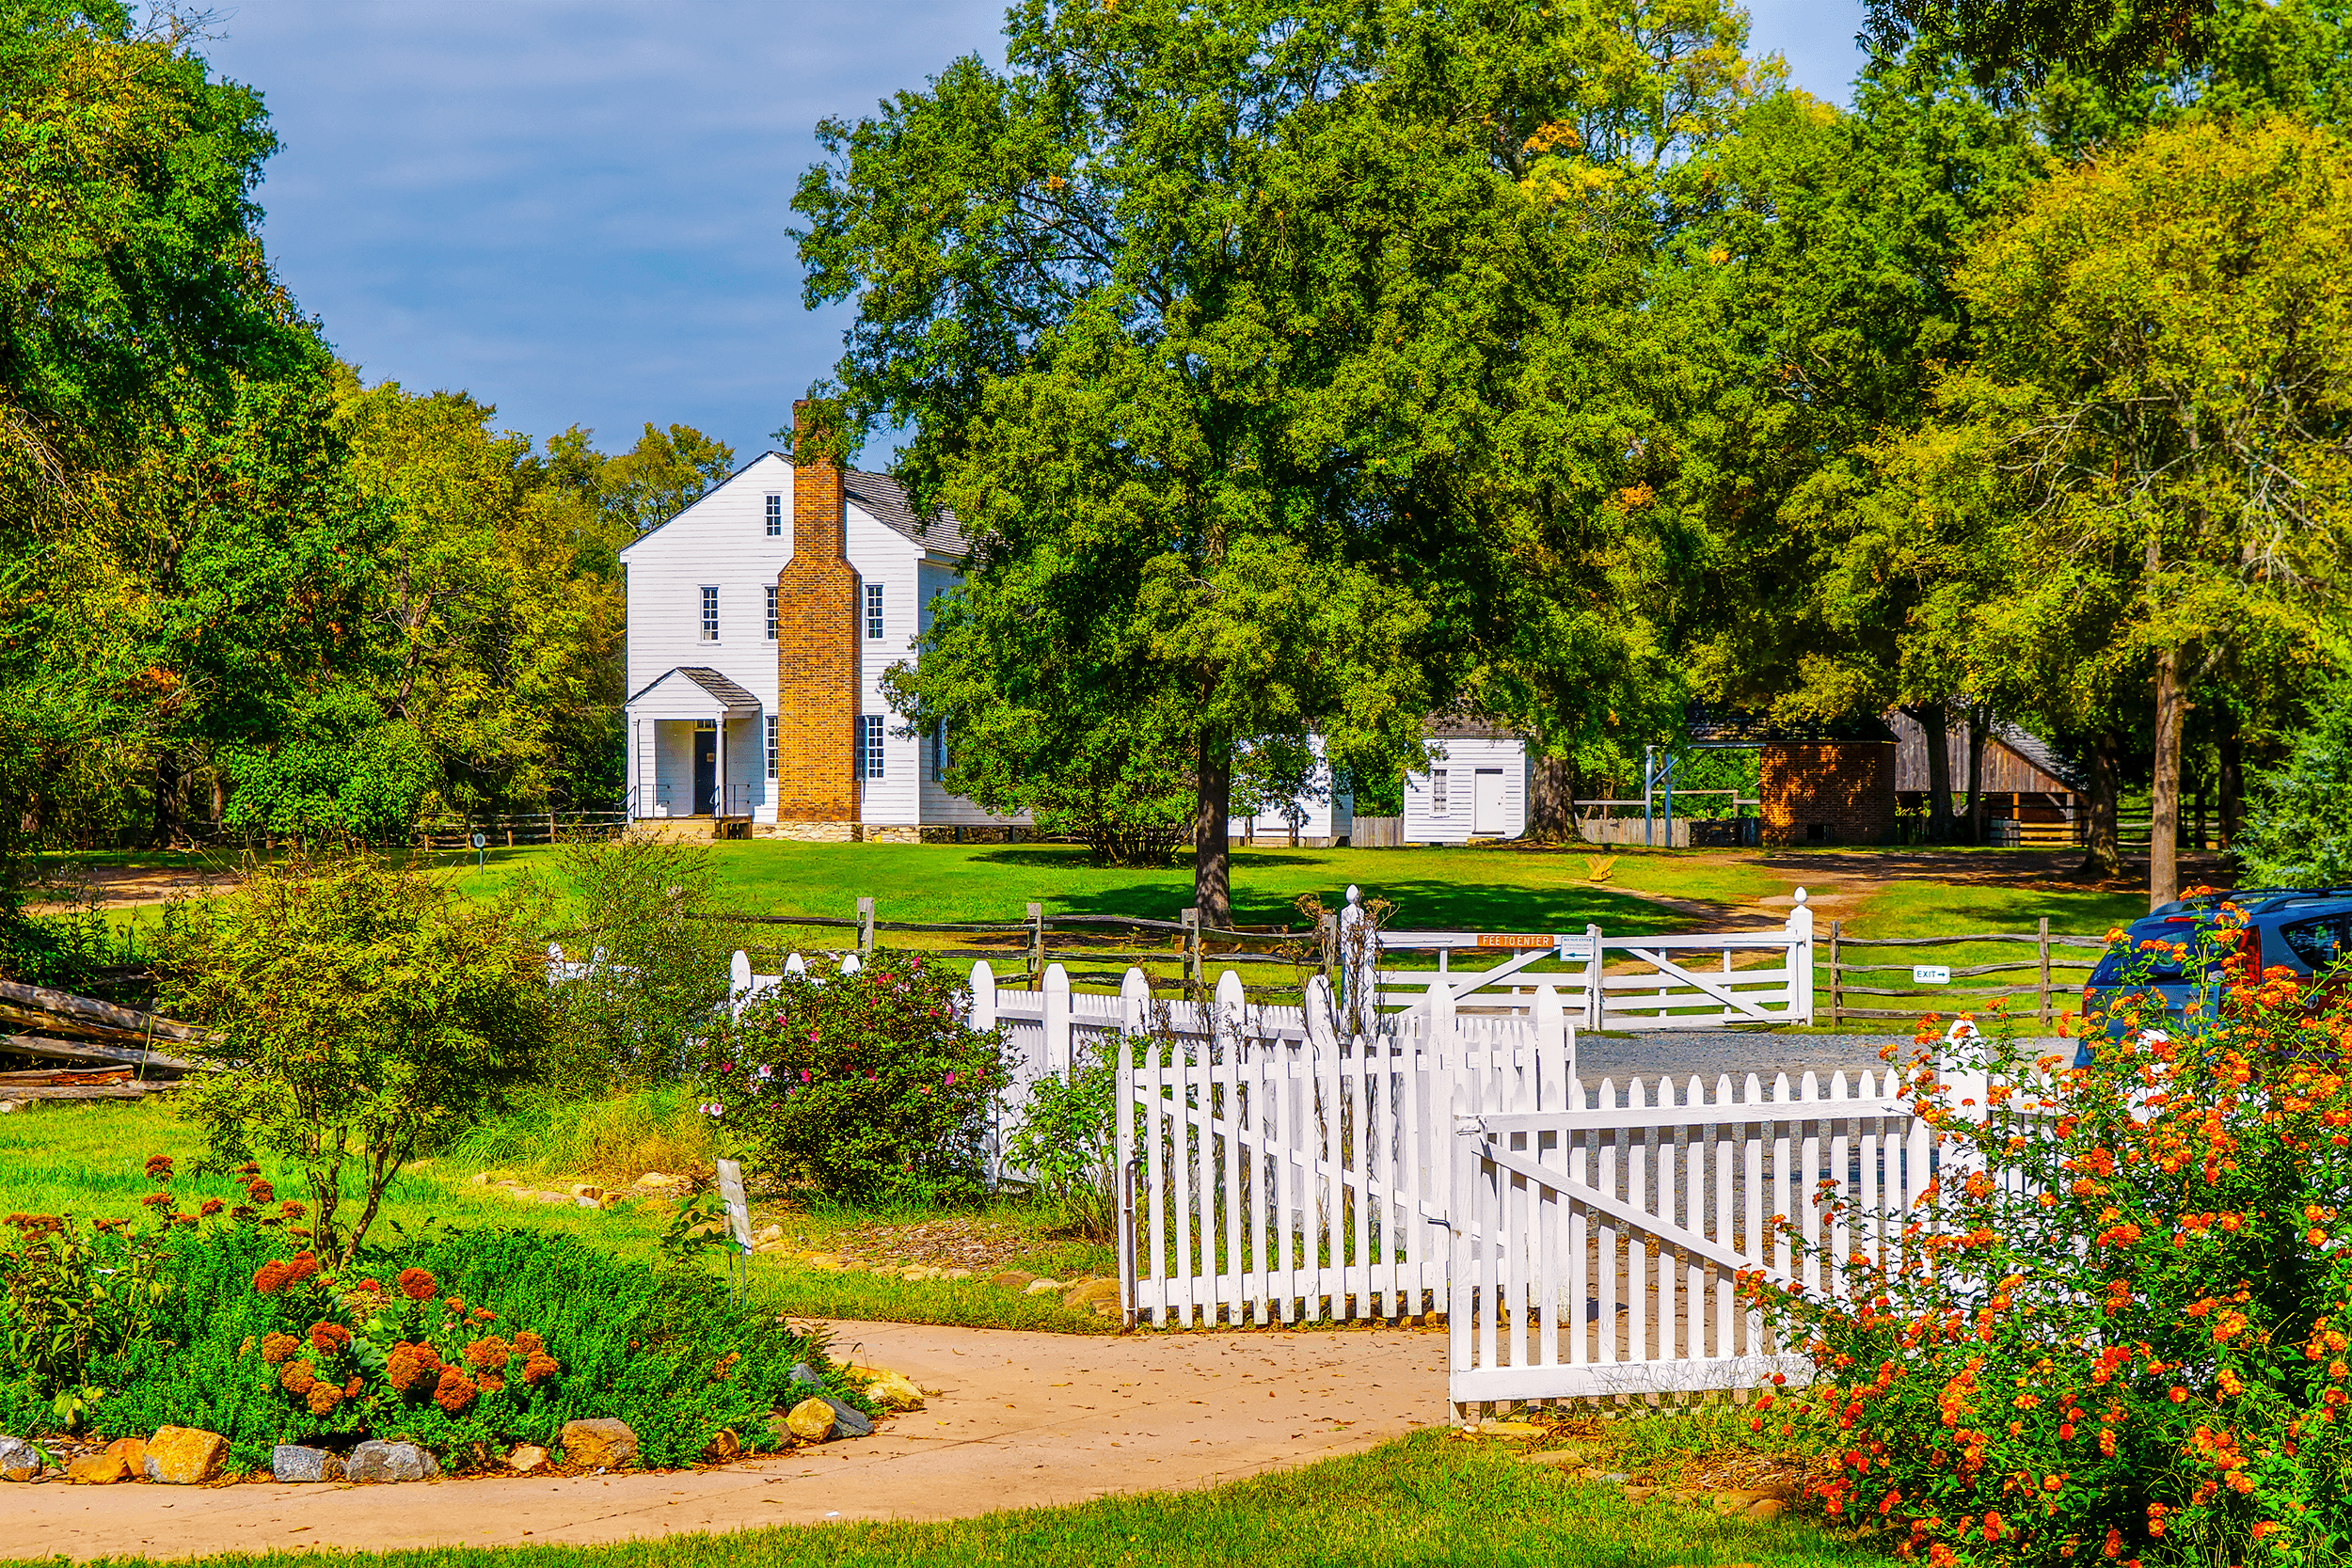 You may also want to visit the  Historic Latta Plantation House , which was built by James Latta around 1800. In the 1970s, after the  Latta House  had lain abandoned for over 20 years, a group of citizens recognized its historical and structural significance and rescued the dilapidated house, restored it and opened the  Latta House  to the public. In 1972 the  Historic Latta Plantation House  was included in the  National Register of Historic Places .